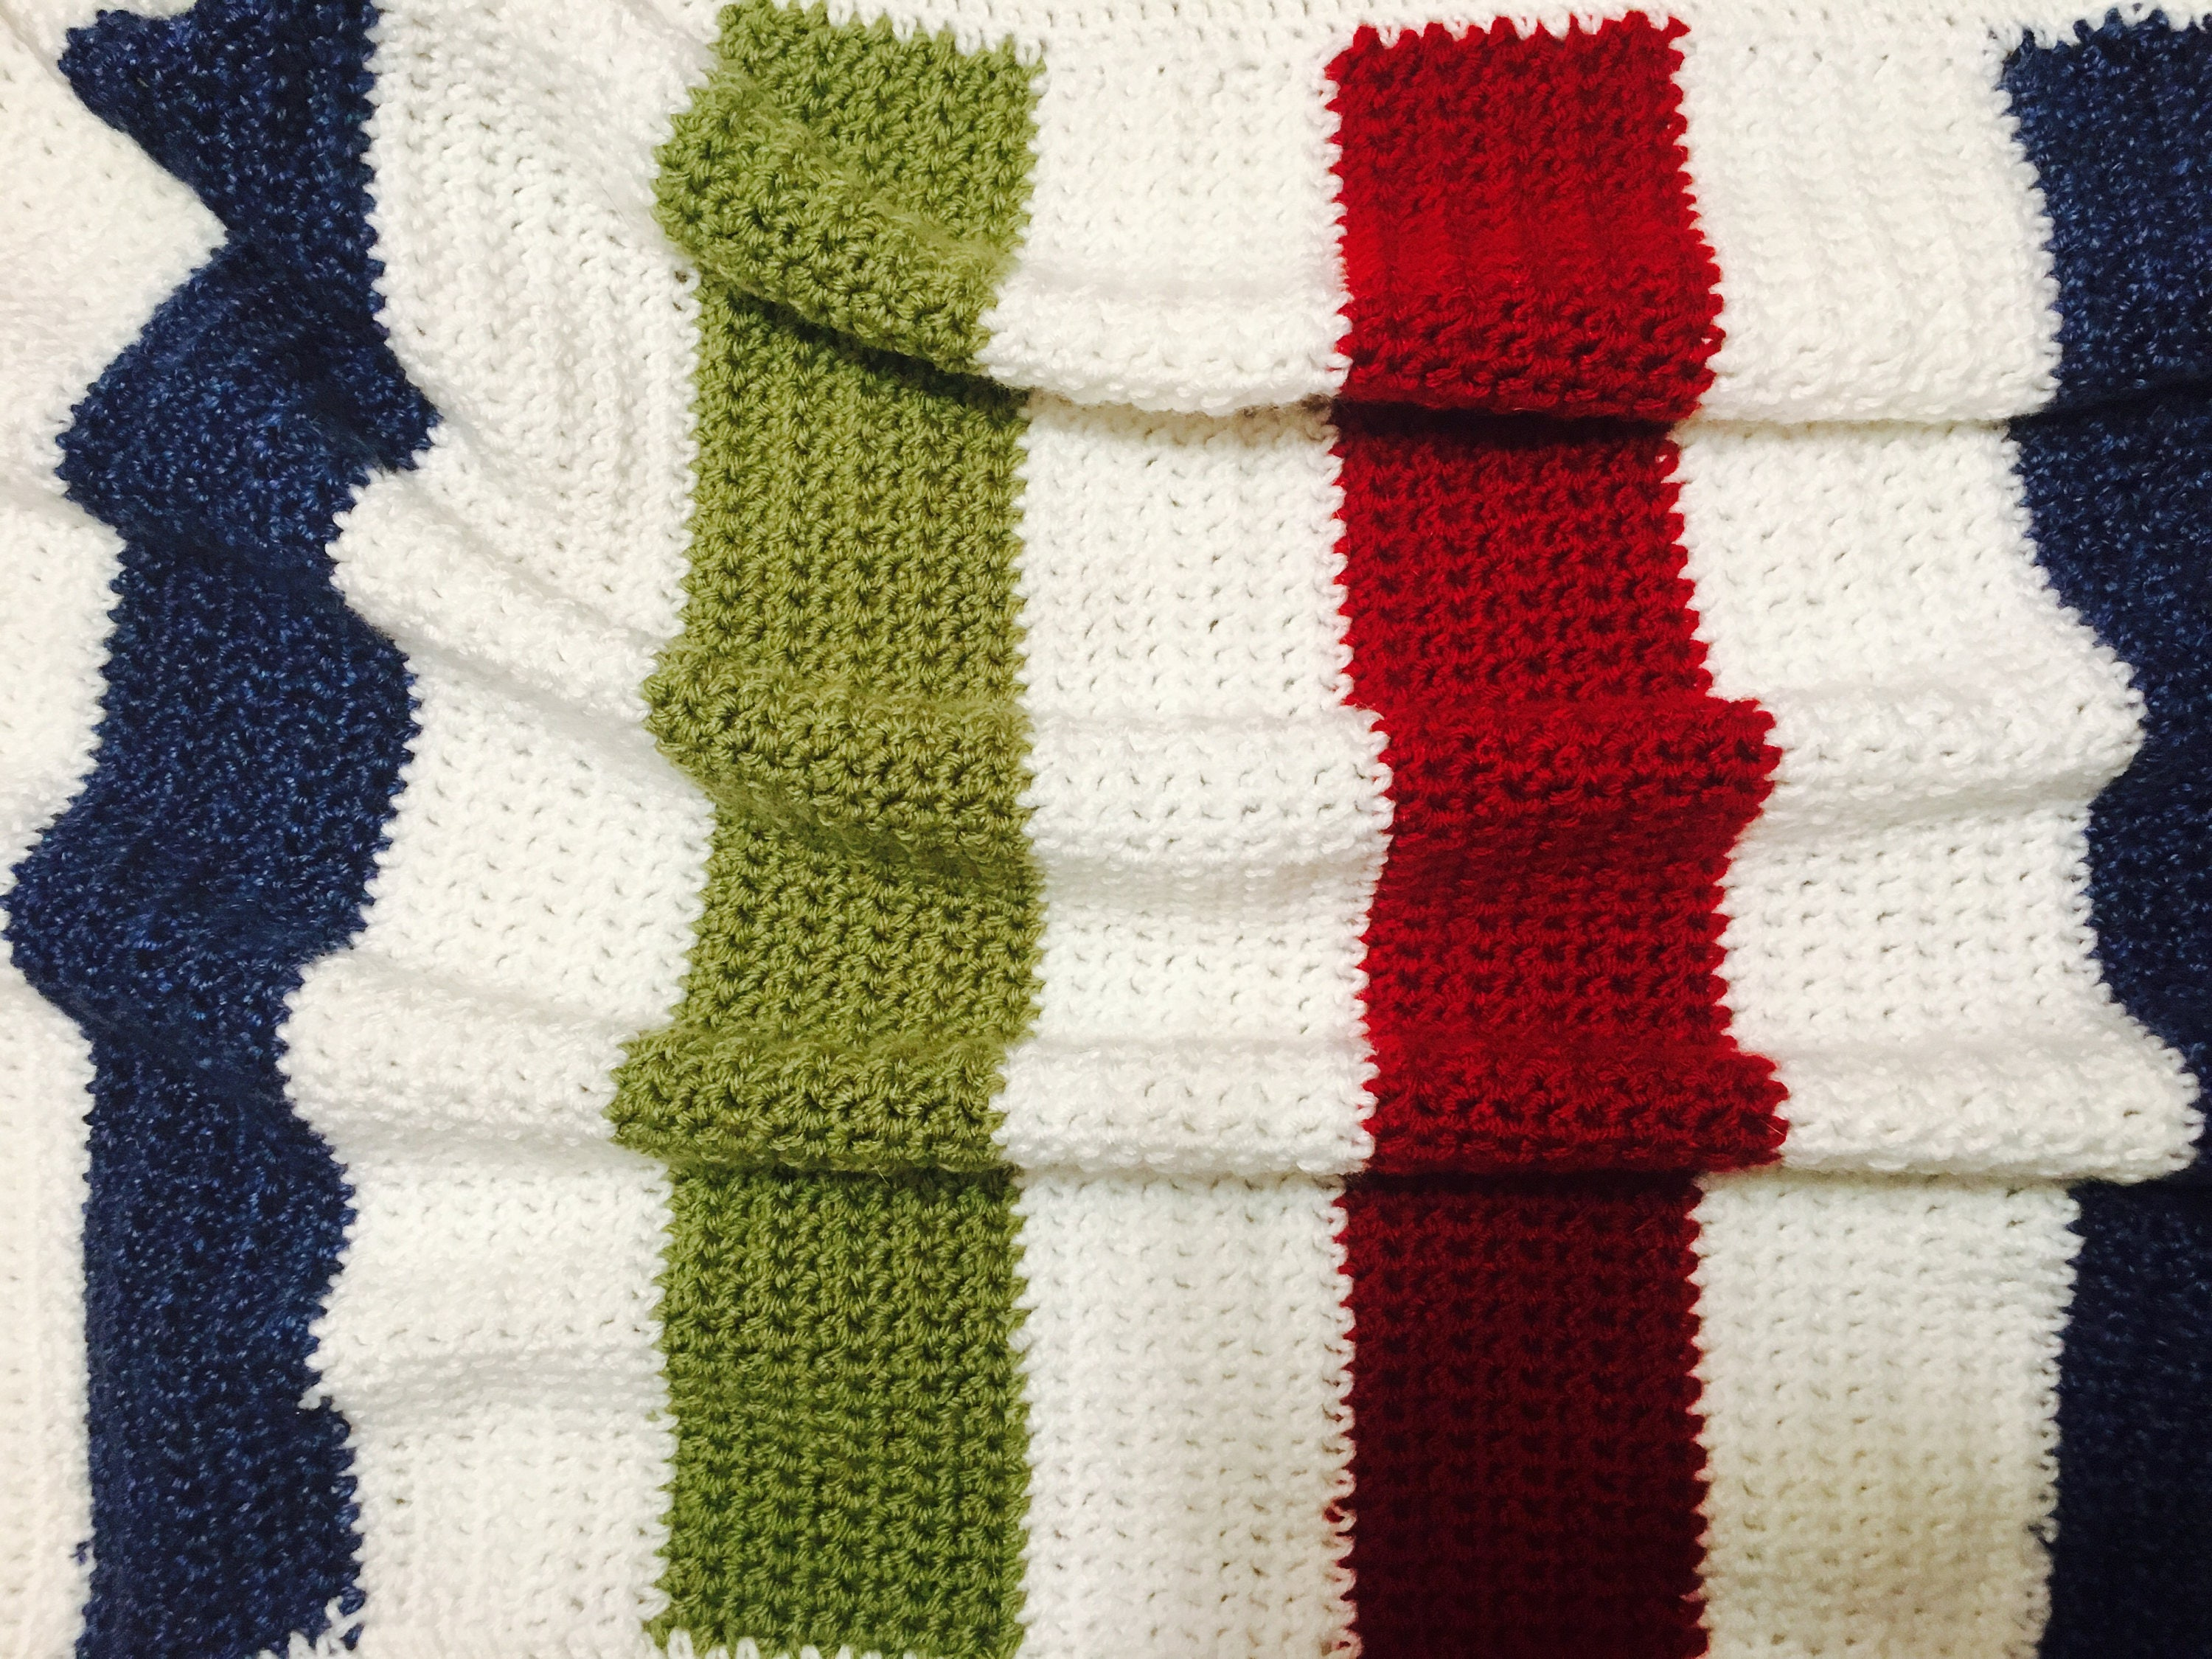 Hand crocheted classic hudson bay point blanket pattern baby zoom bankloansurffo Image collections